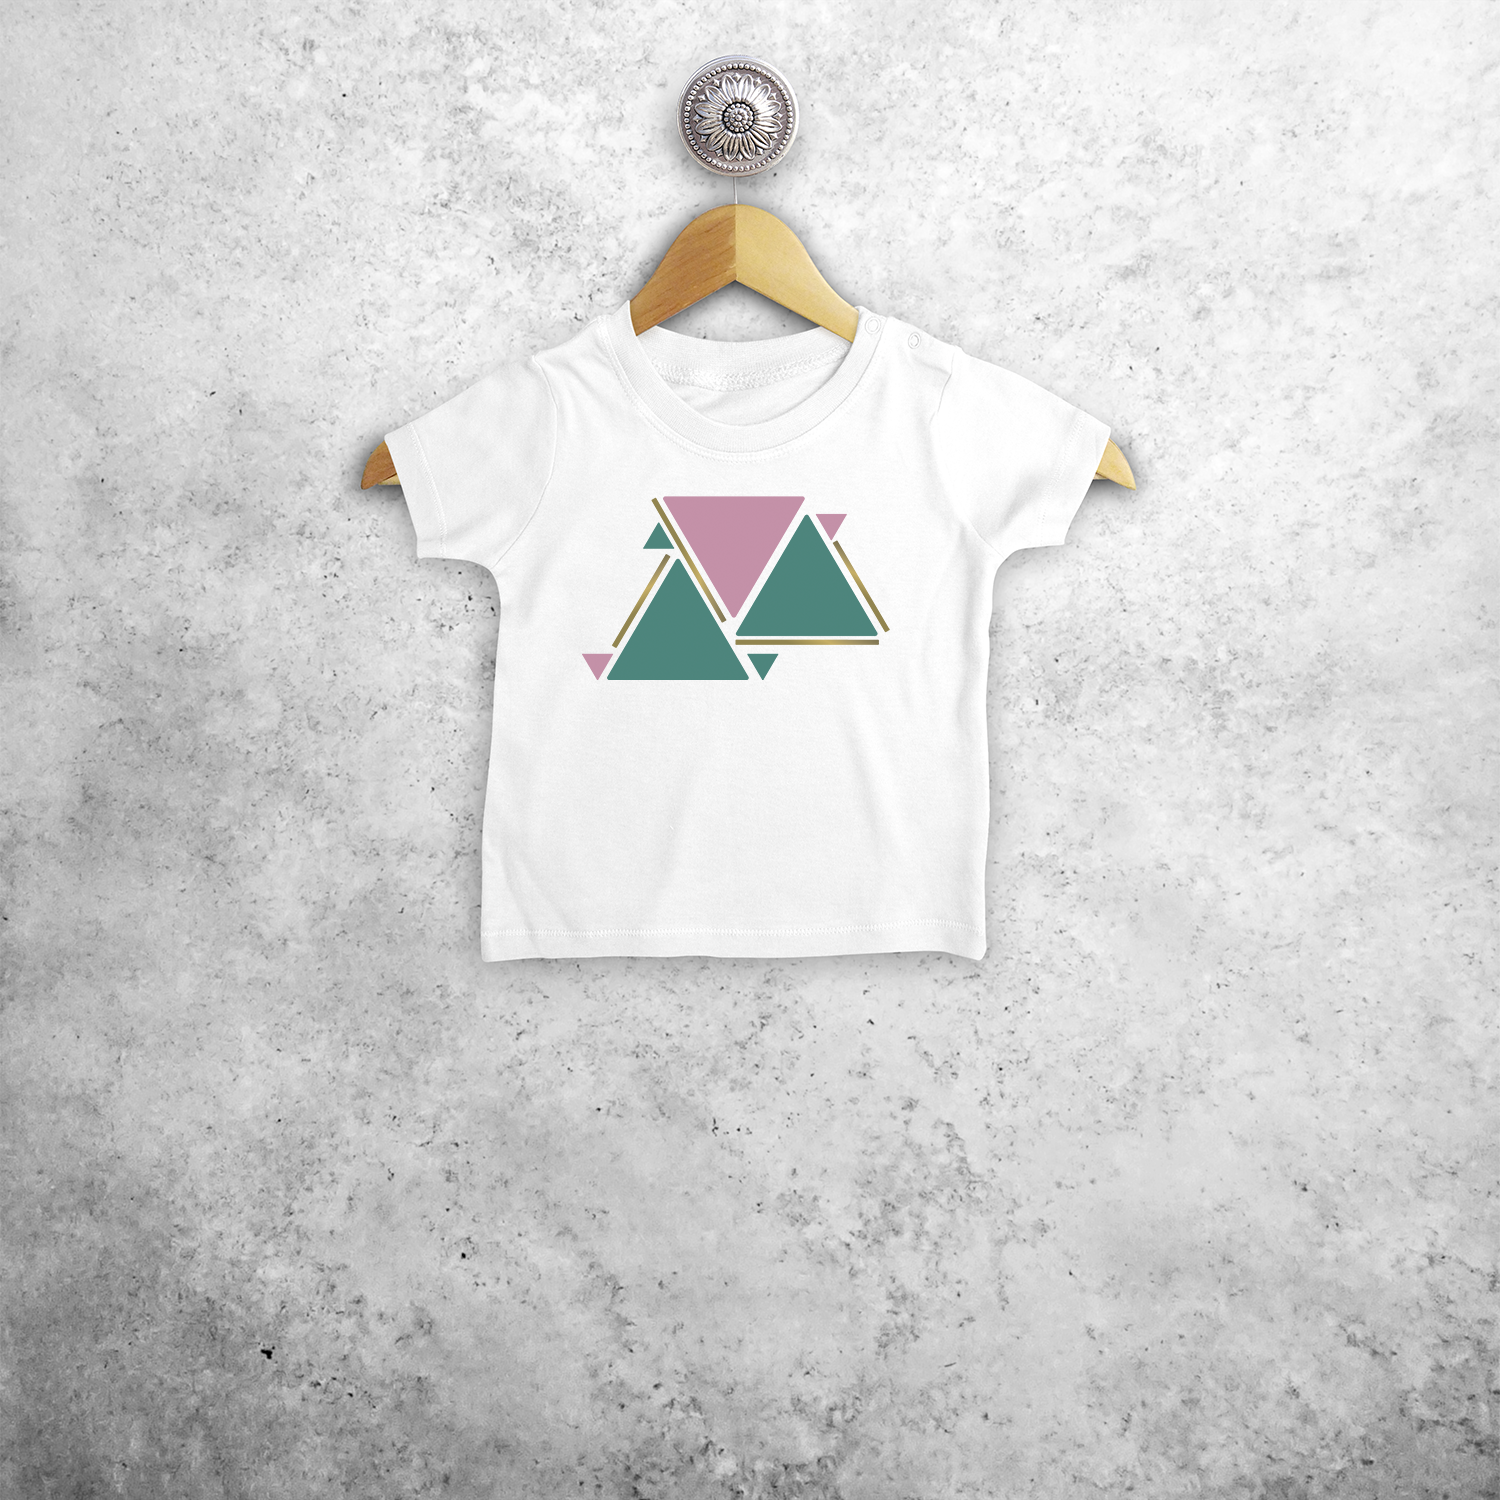 Triangles baby shortsleeve shirt